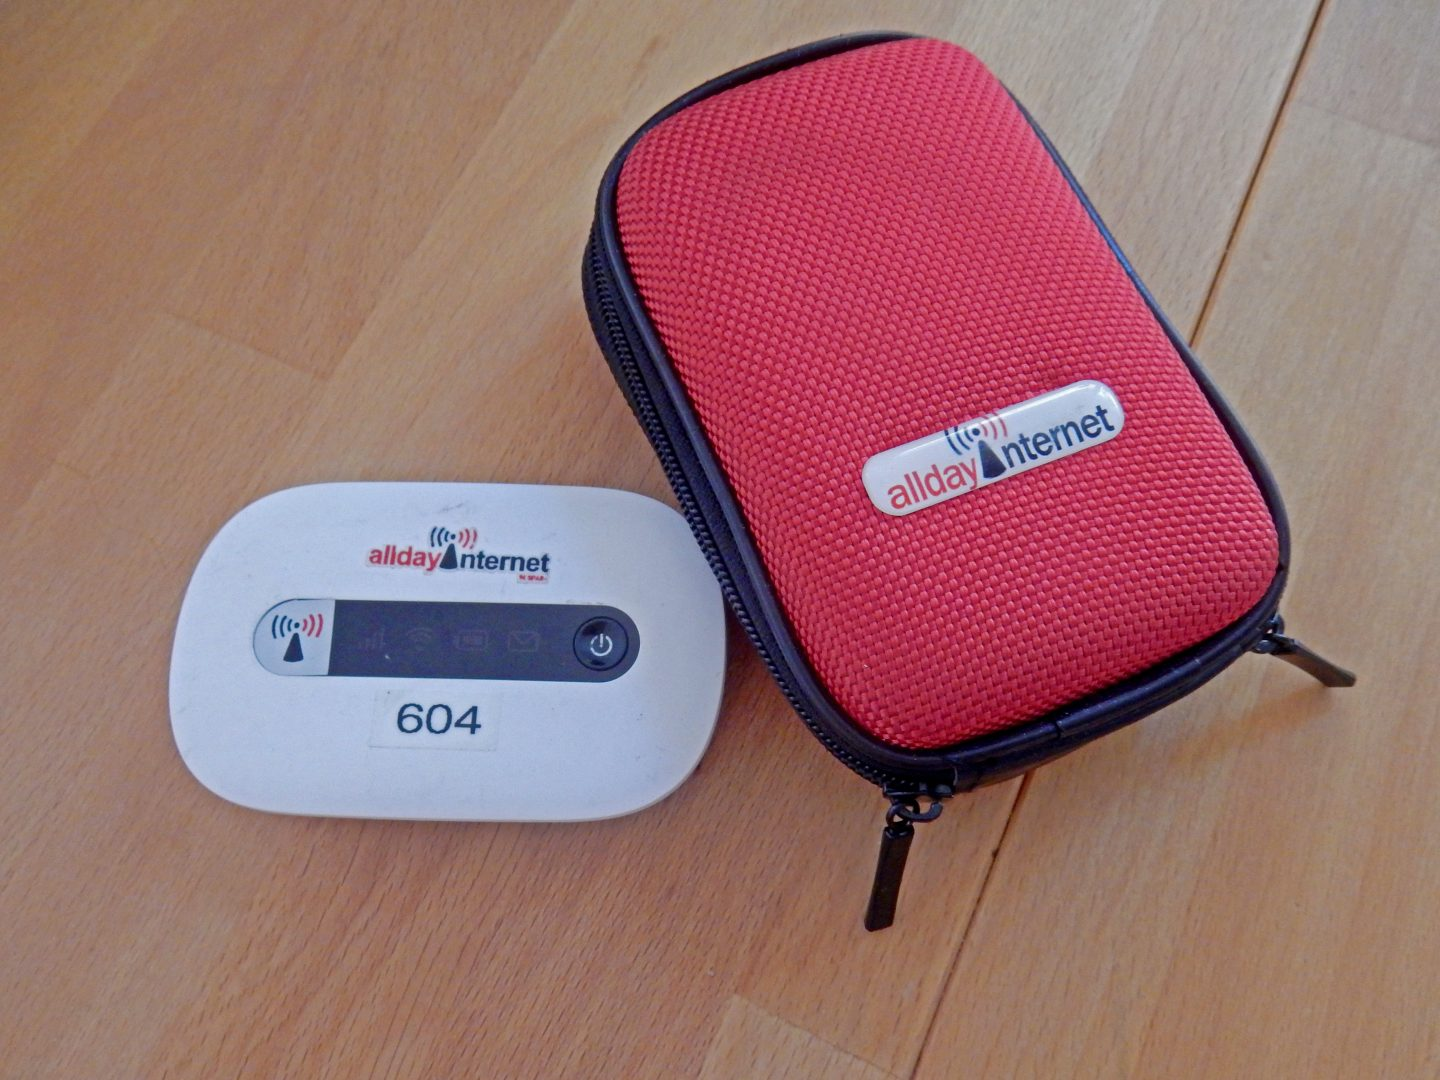 All Day Internet – The Essential WiFi For On The Go Travellers